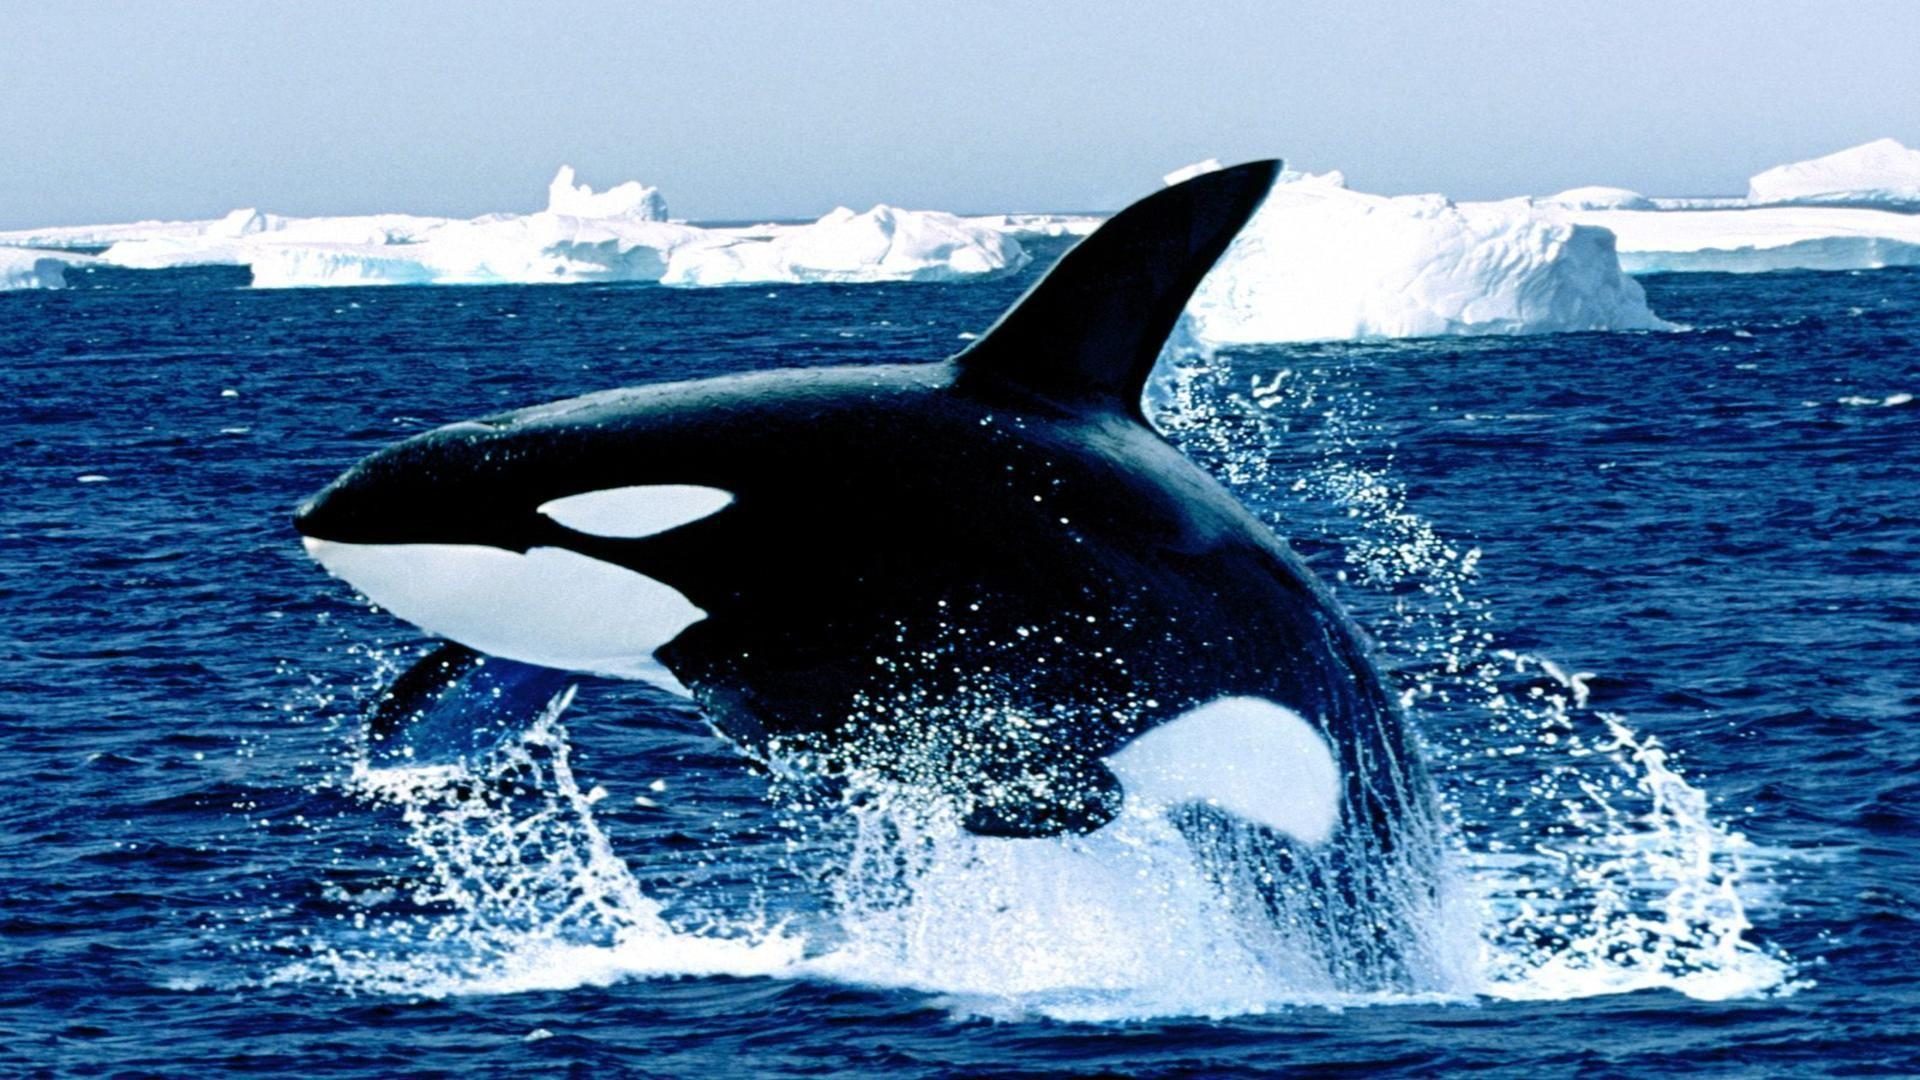 orca azul wallpaper - photo #1